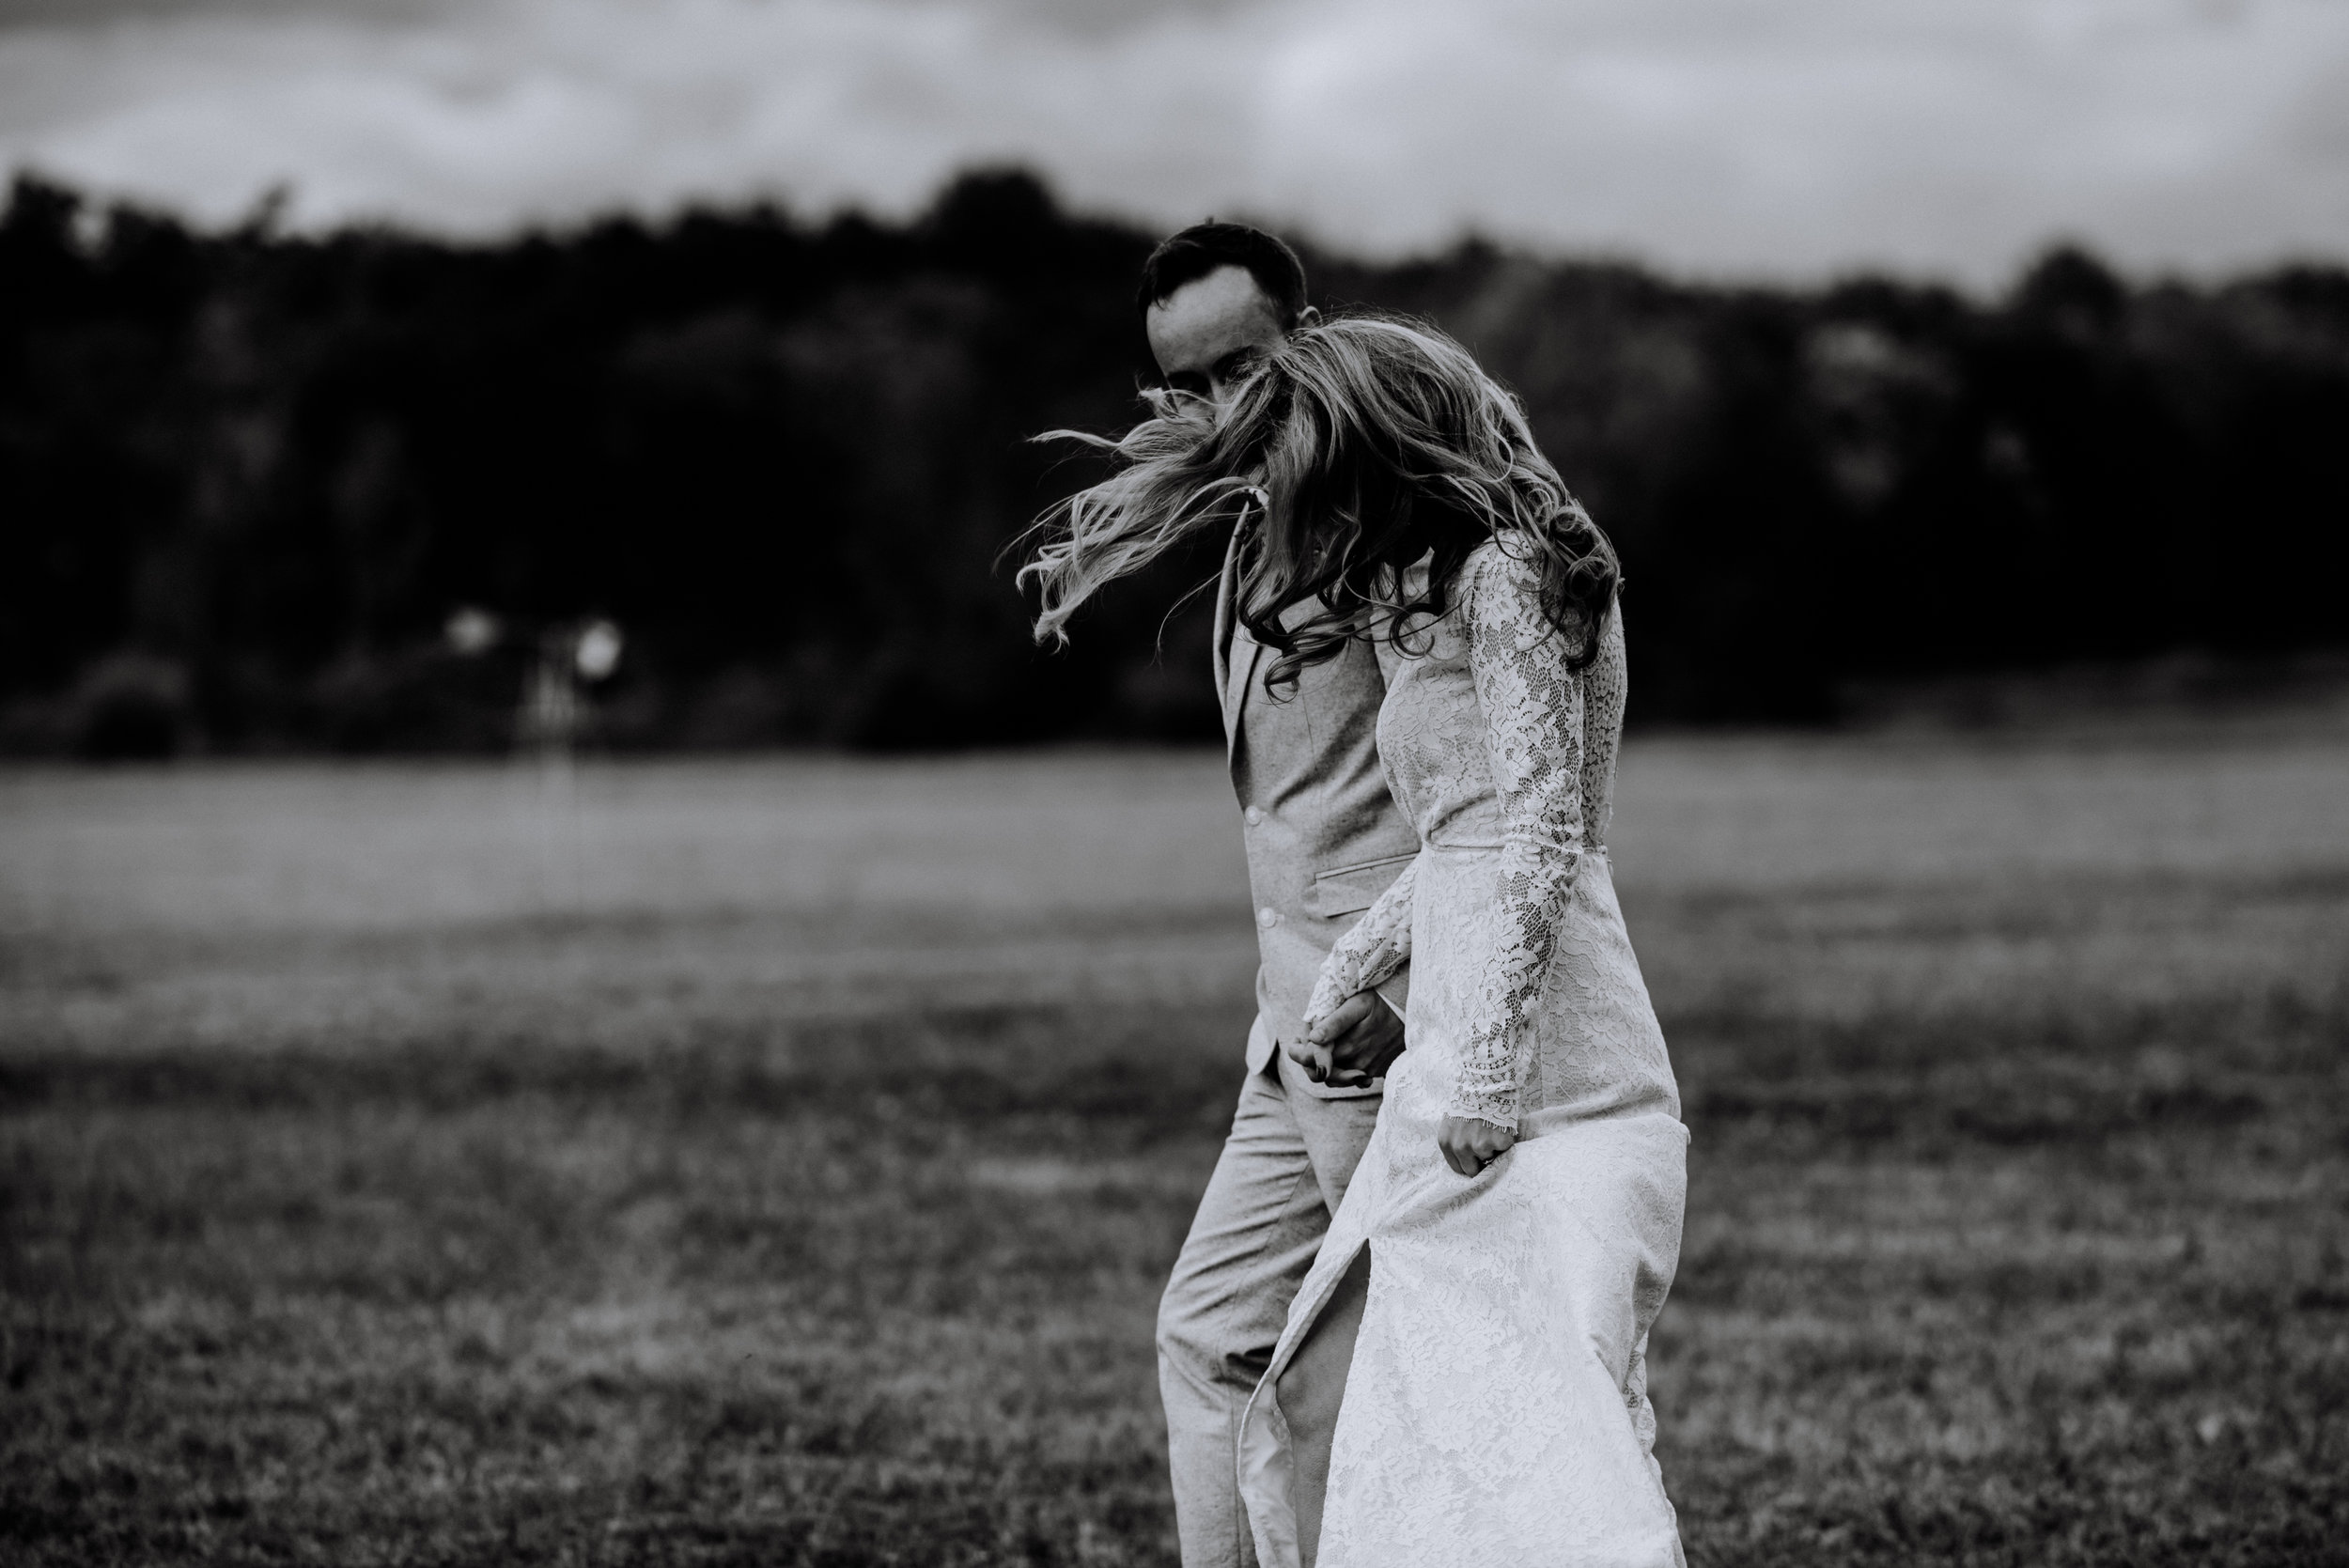 black and white candid of the wind in the bride's hair while walking hand in hand with groom